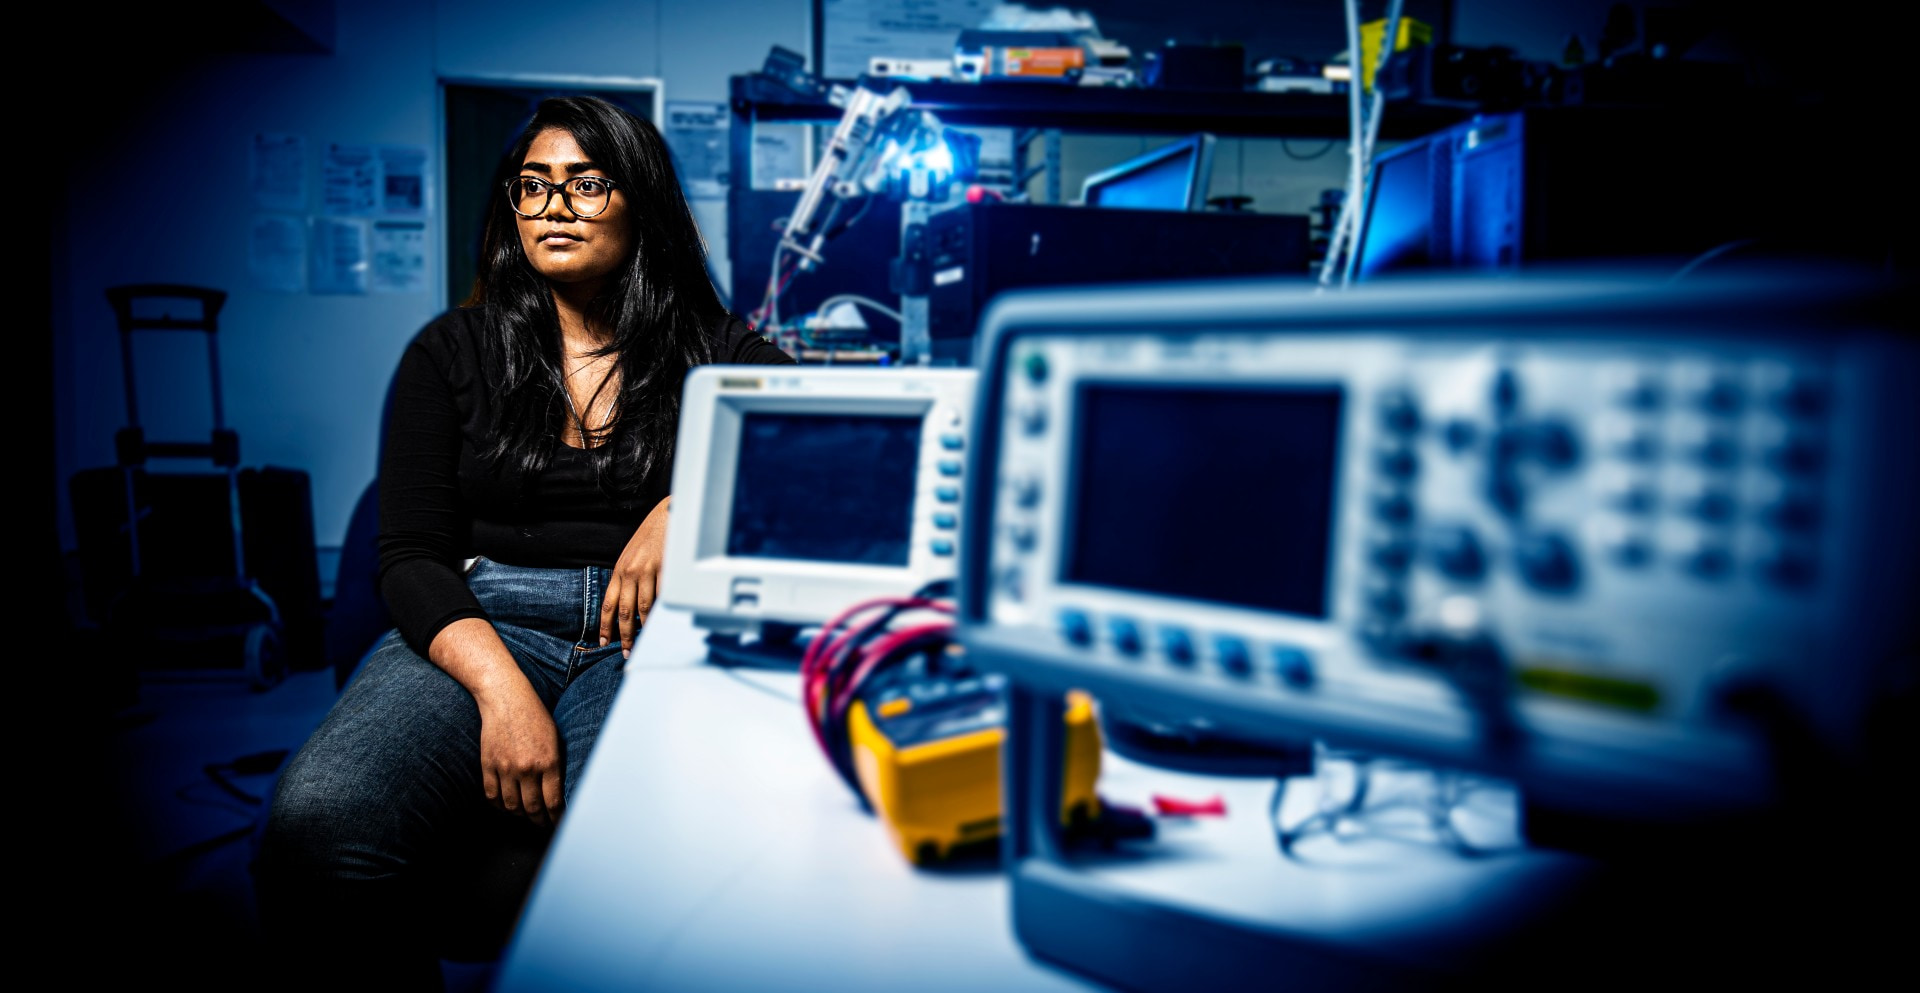 UOW graduate Geetika Maddirala sits at a computer in a medical lab. Photo: Paul Jones